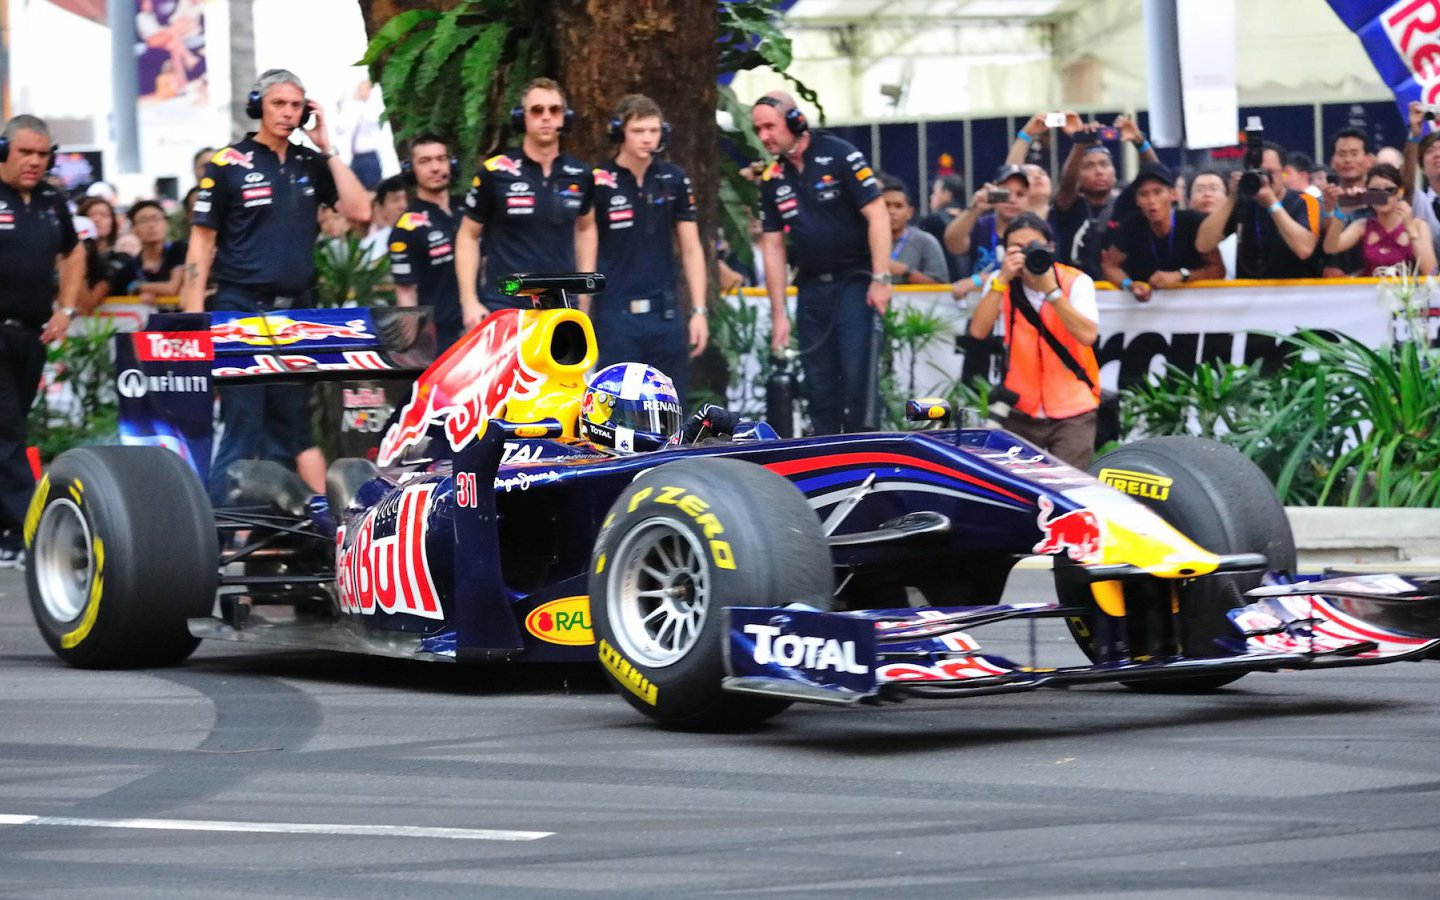 David Coulthard performing donuts in Singapore